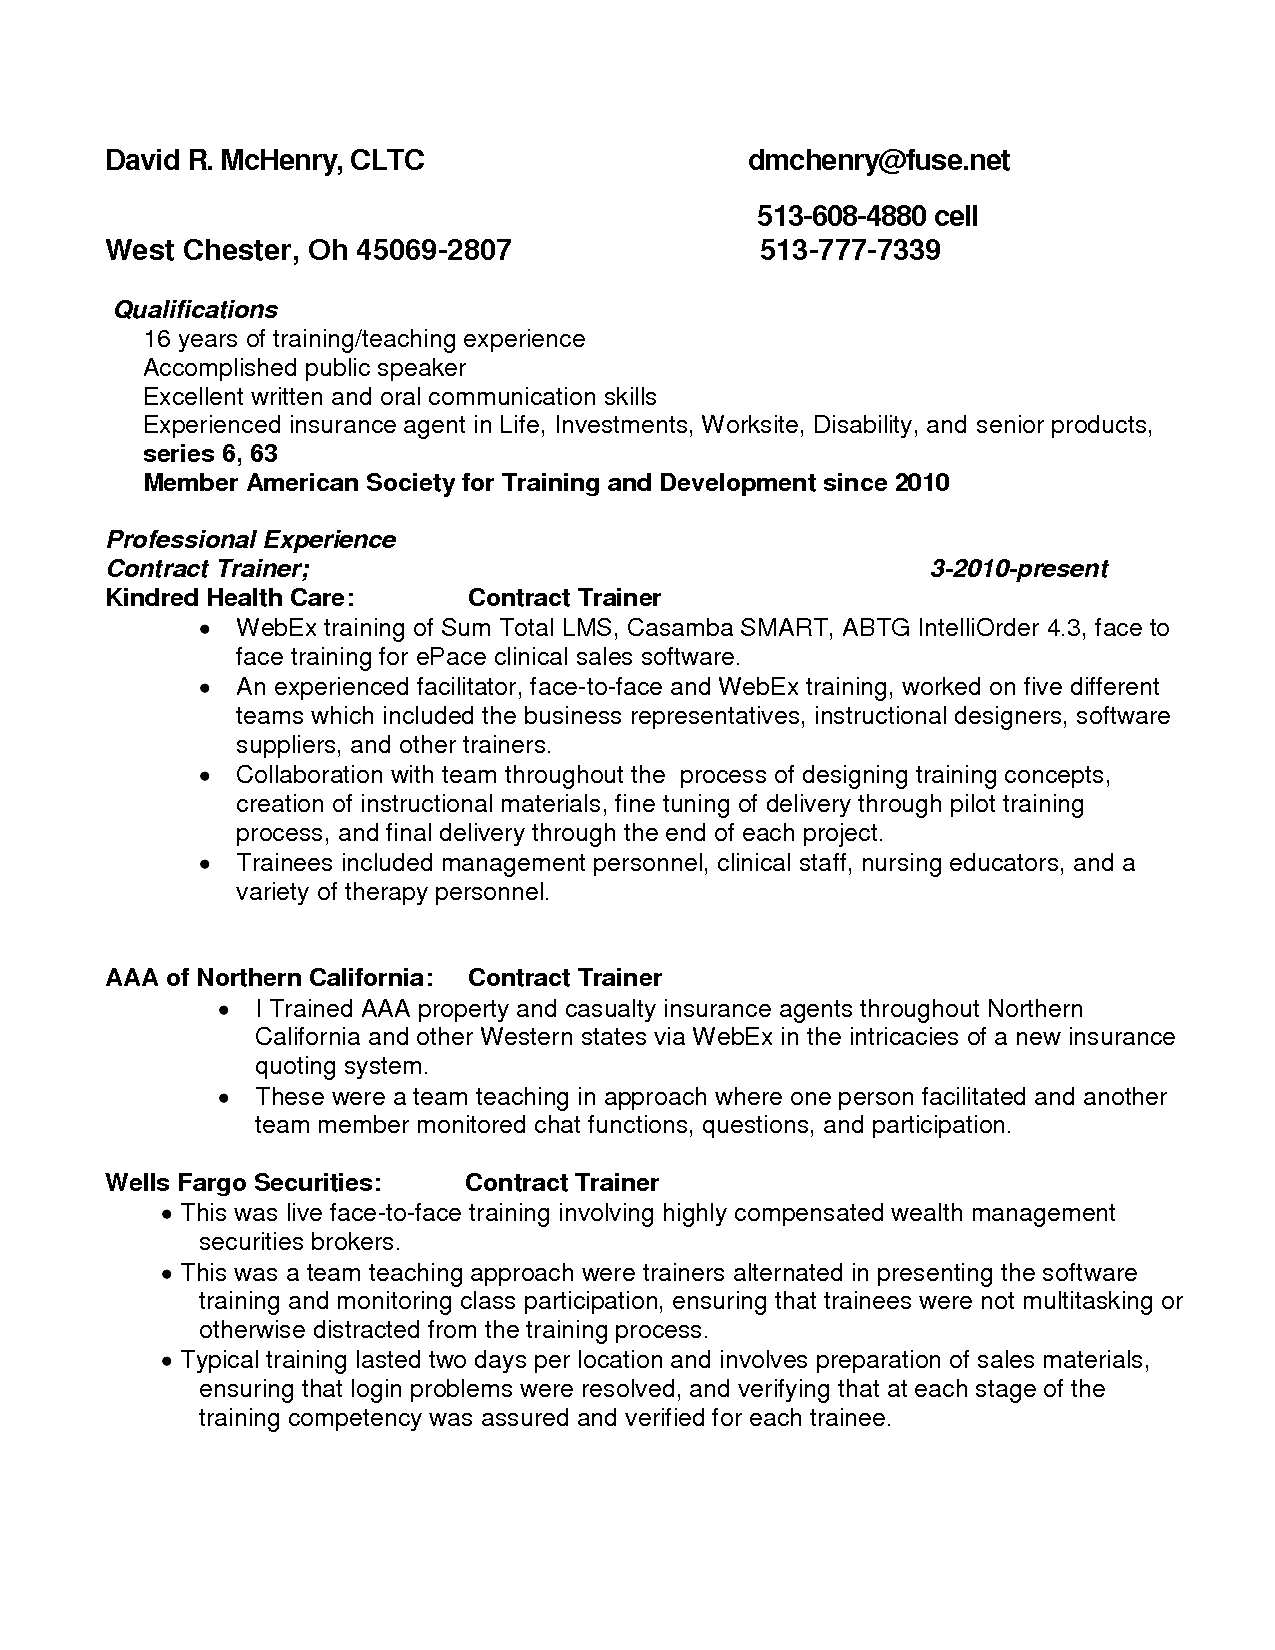 contract specialist cover letter